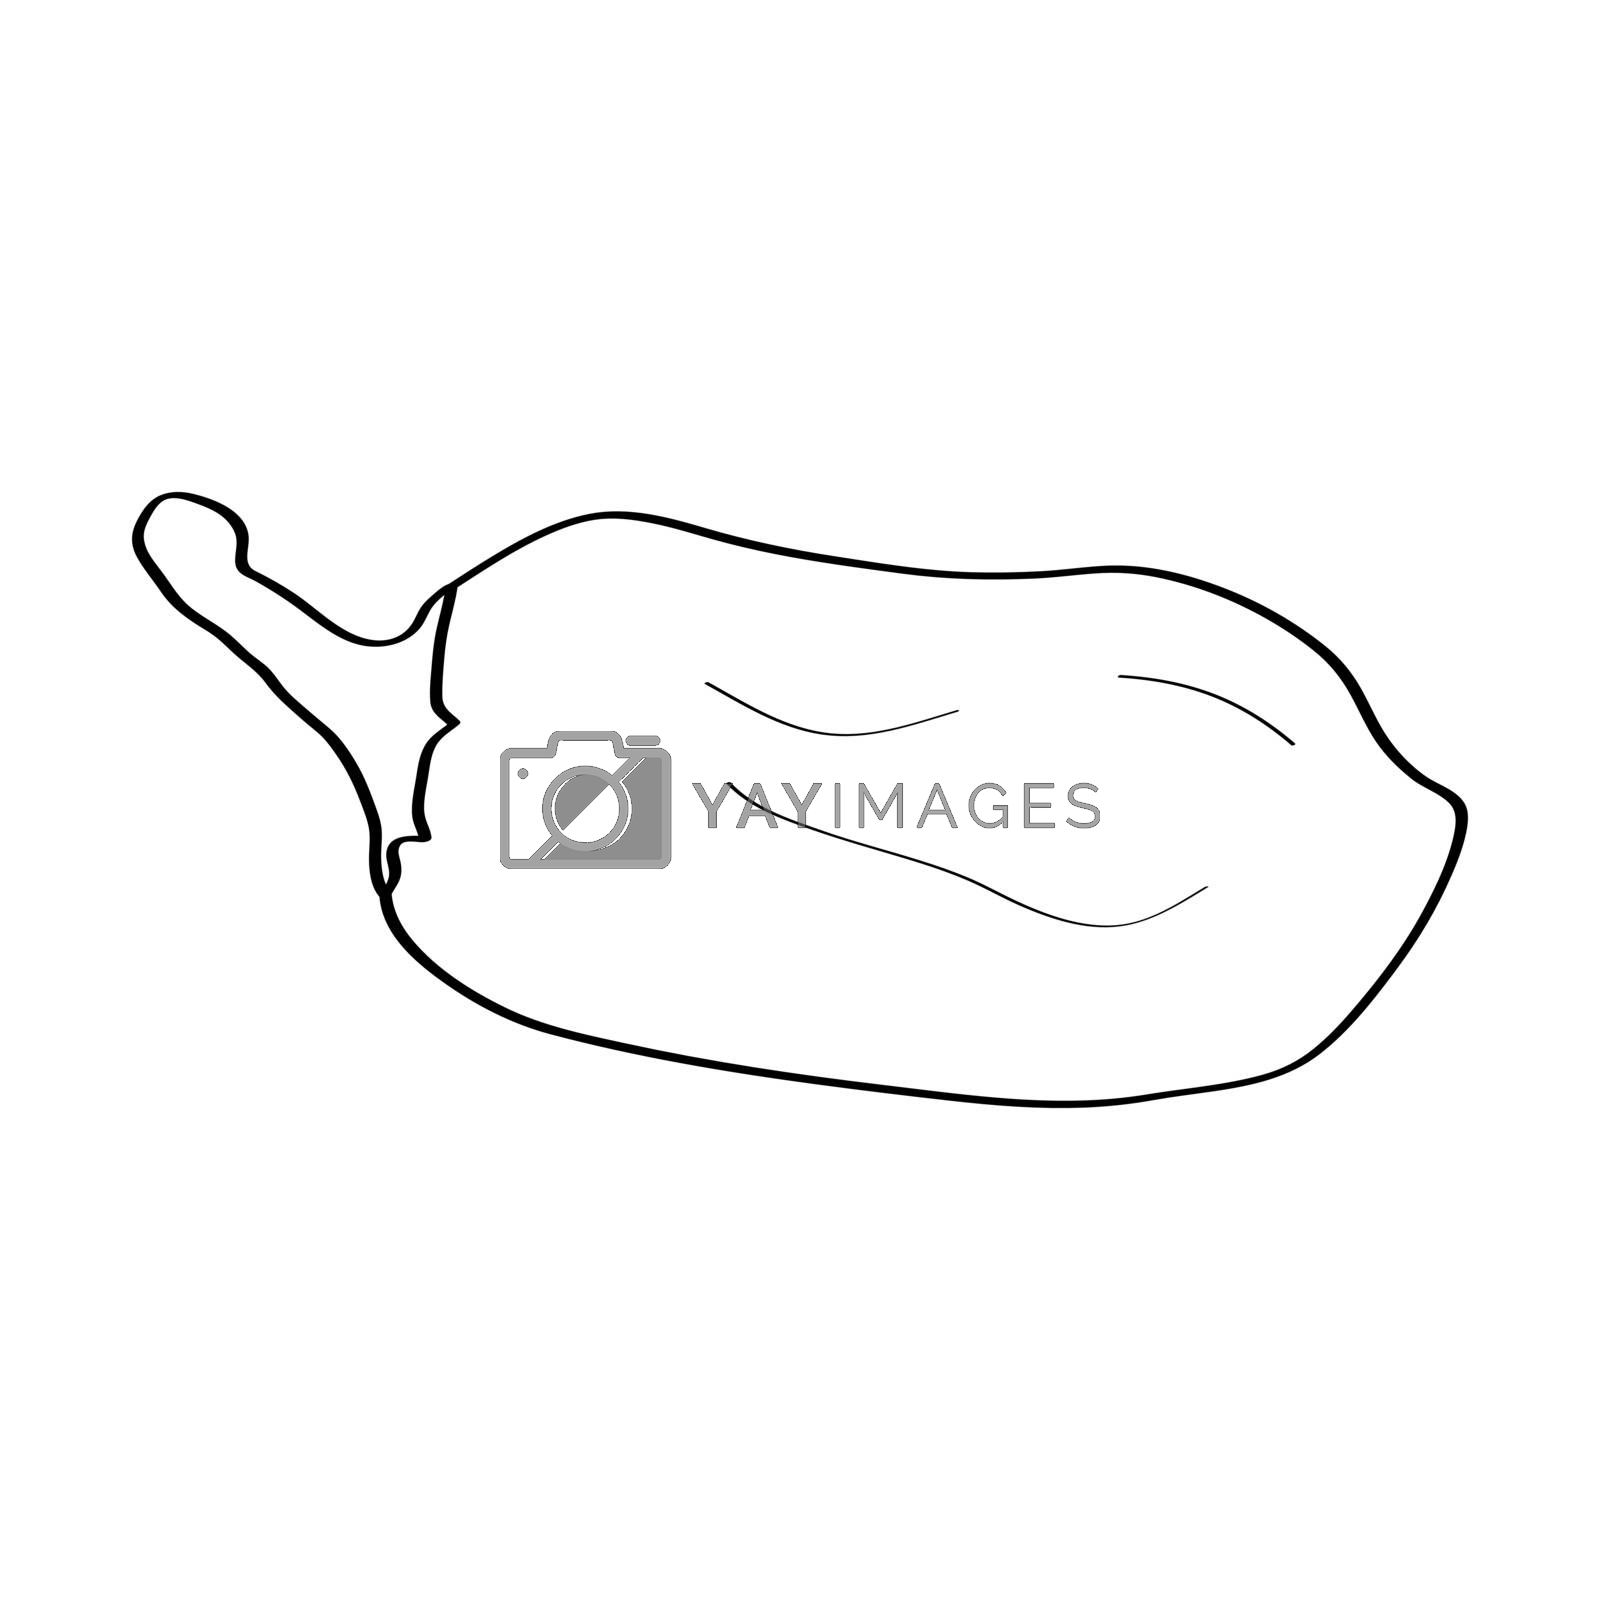 Pepper. Hand drawn doodle icon. Vector black and white illustration isolated on white background. Decoration for greeting cards, posters, patches, prints for clothes, emblems.